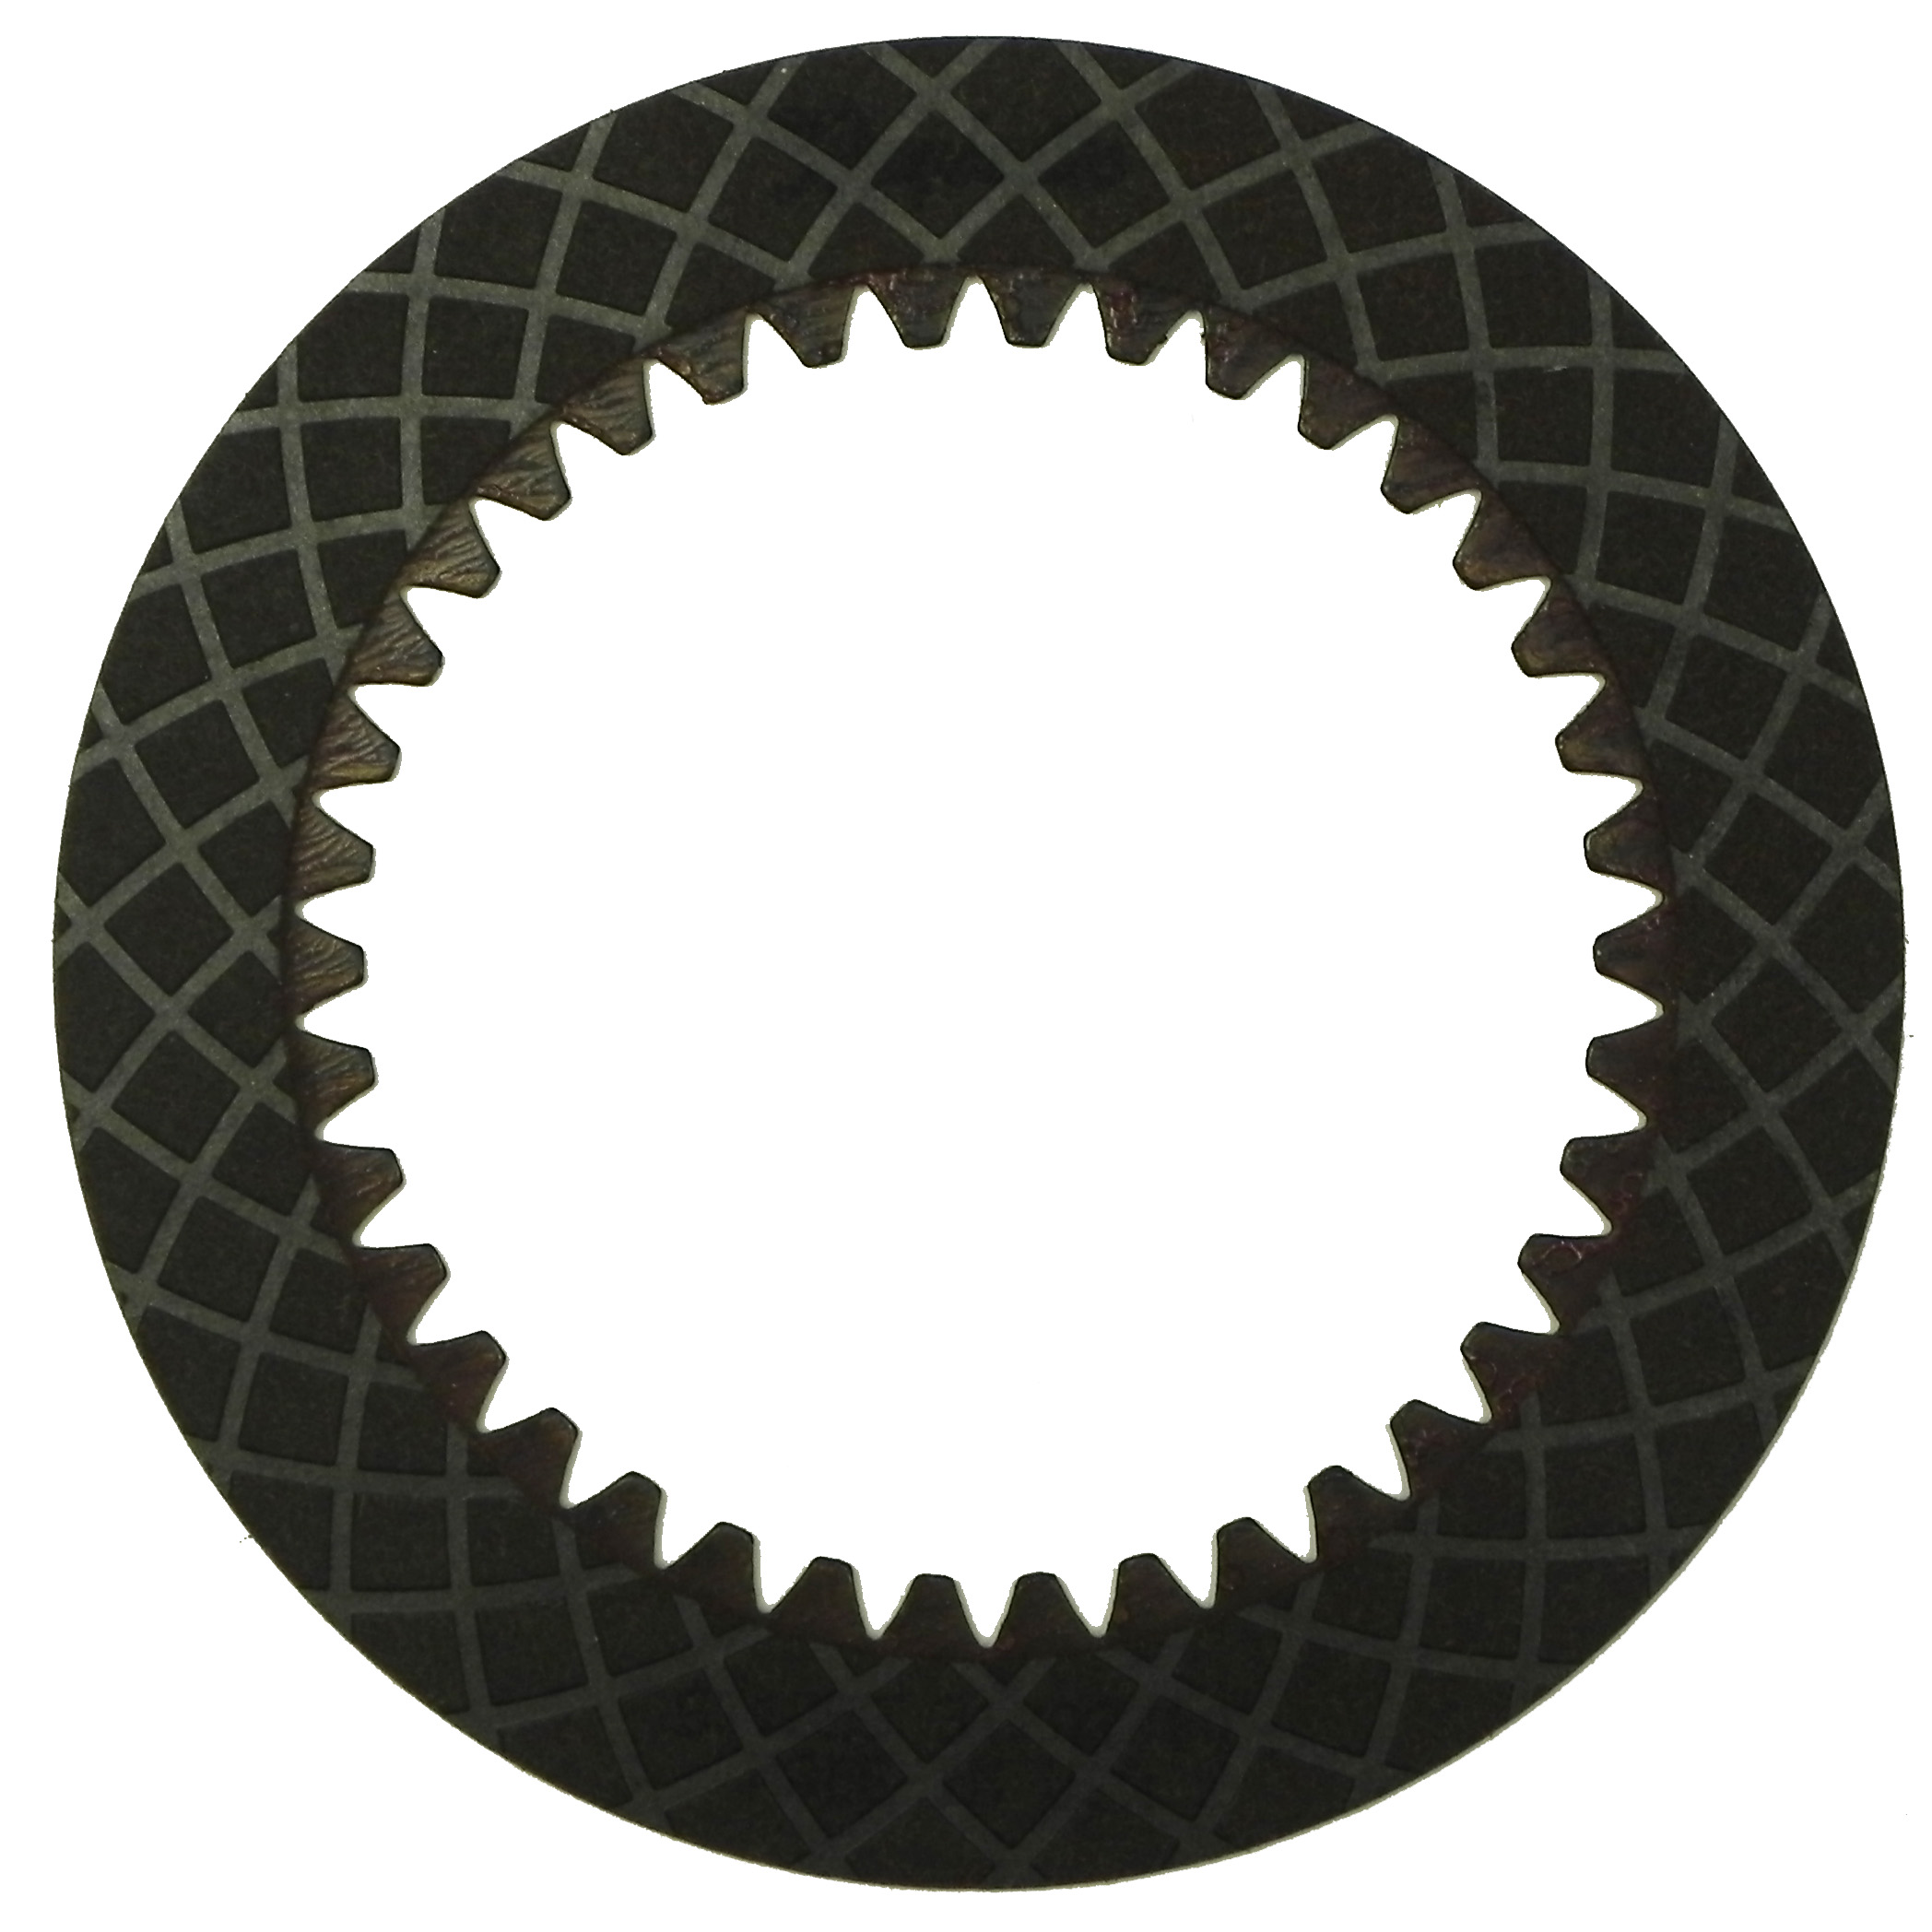 R571855 | 1986-1987 Friction Clutch Plate GPX 1st, 2nd, 3rd, 4th GPX